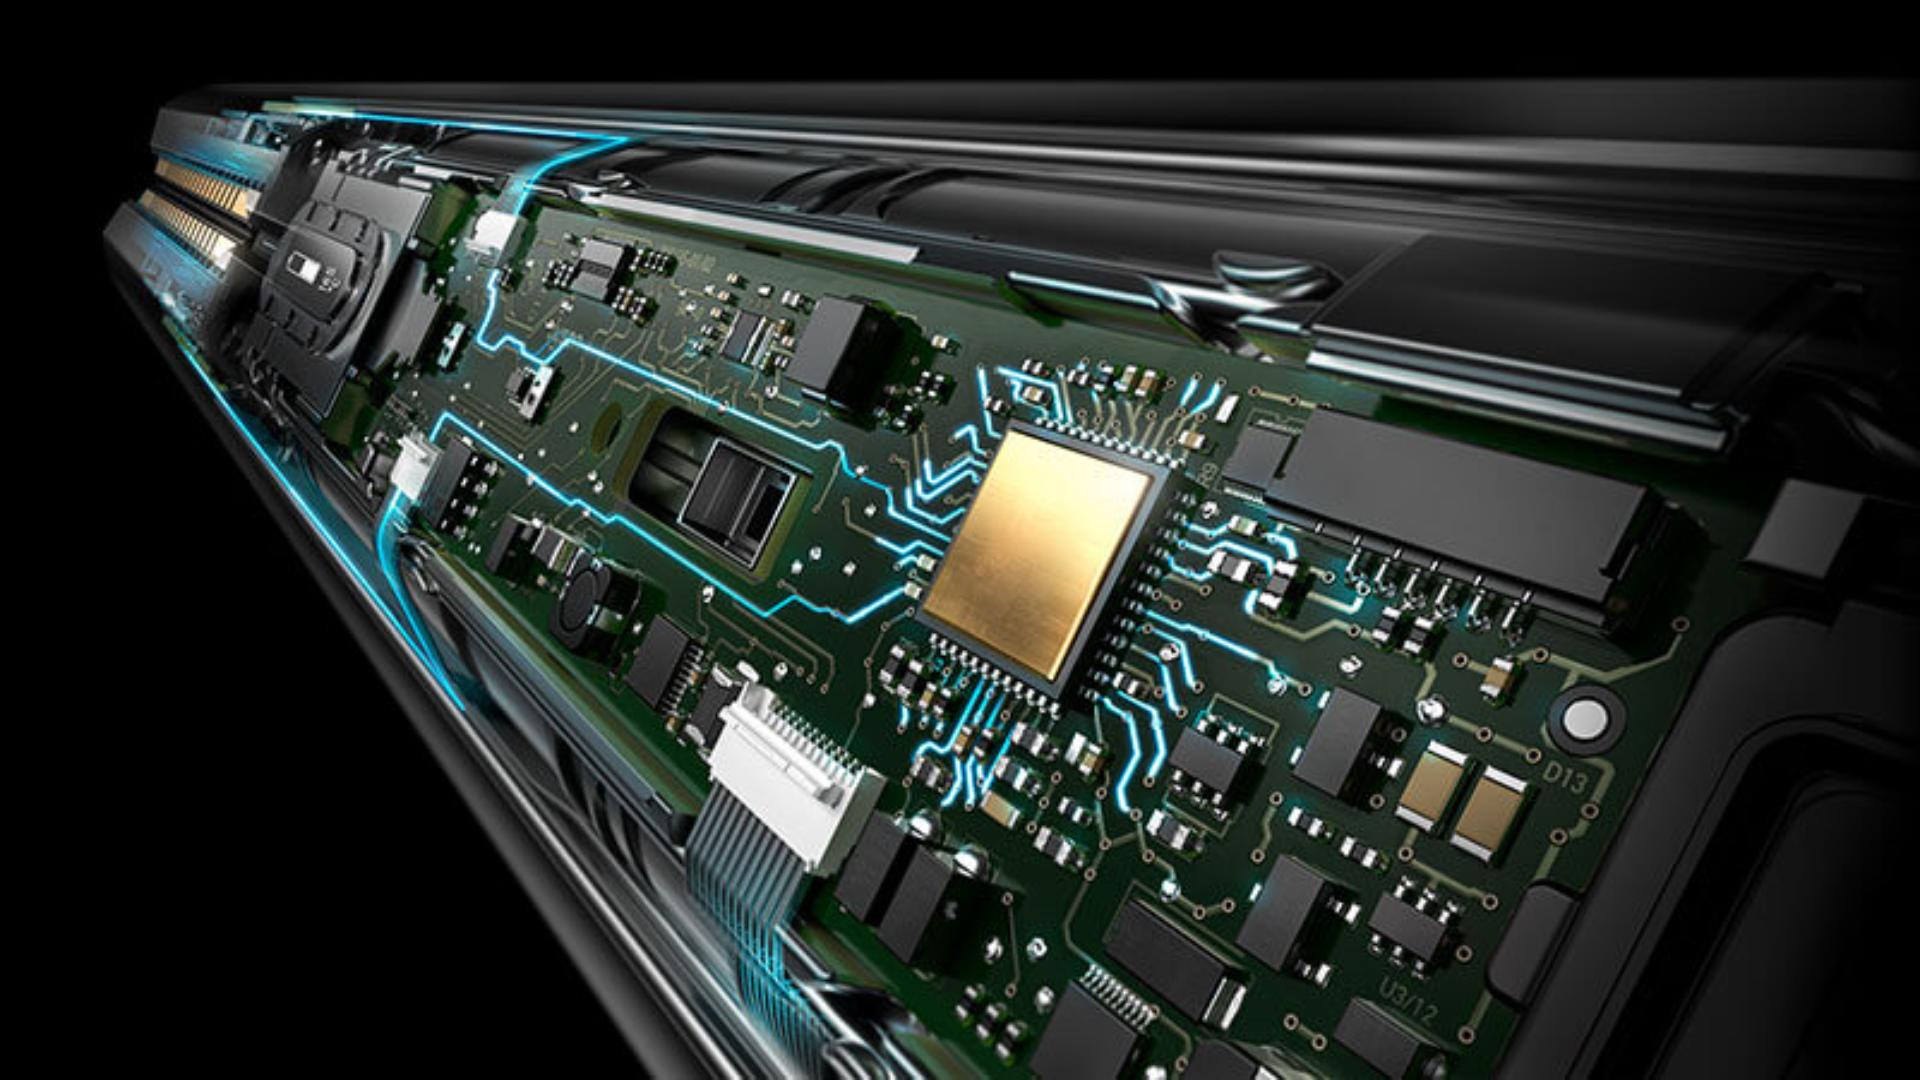 Tech image of intelligent microprocessors